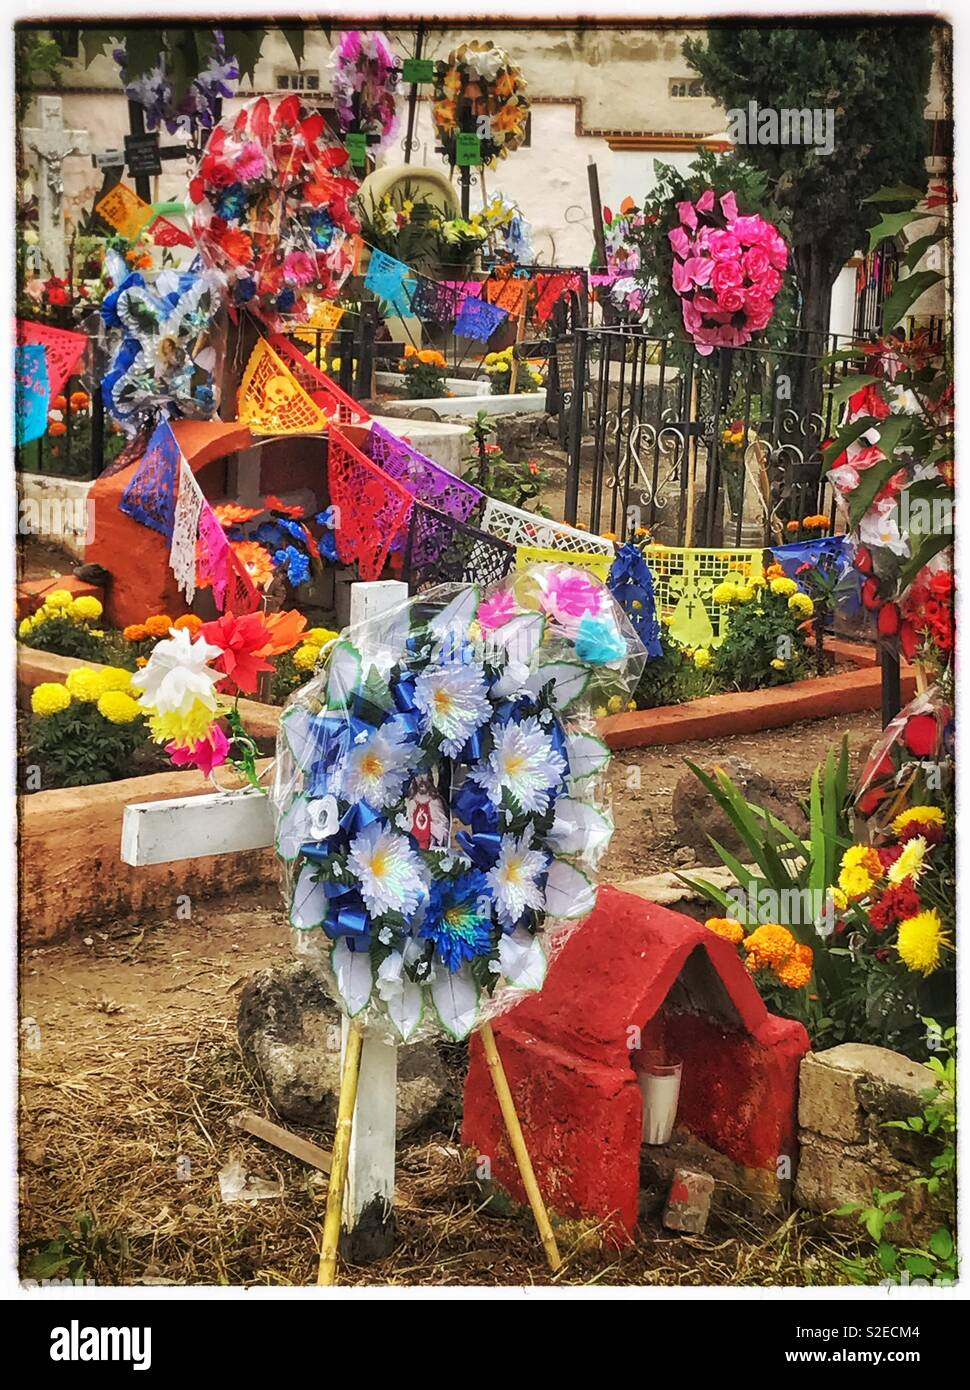 Colorful displays of flowers and decorated gravesites honor deceased loved ones on Día de Los Muertos in Mexico. - Stock Image